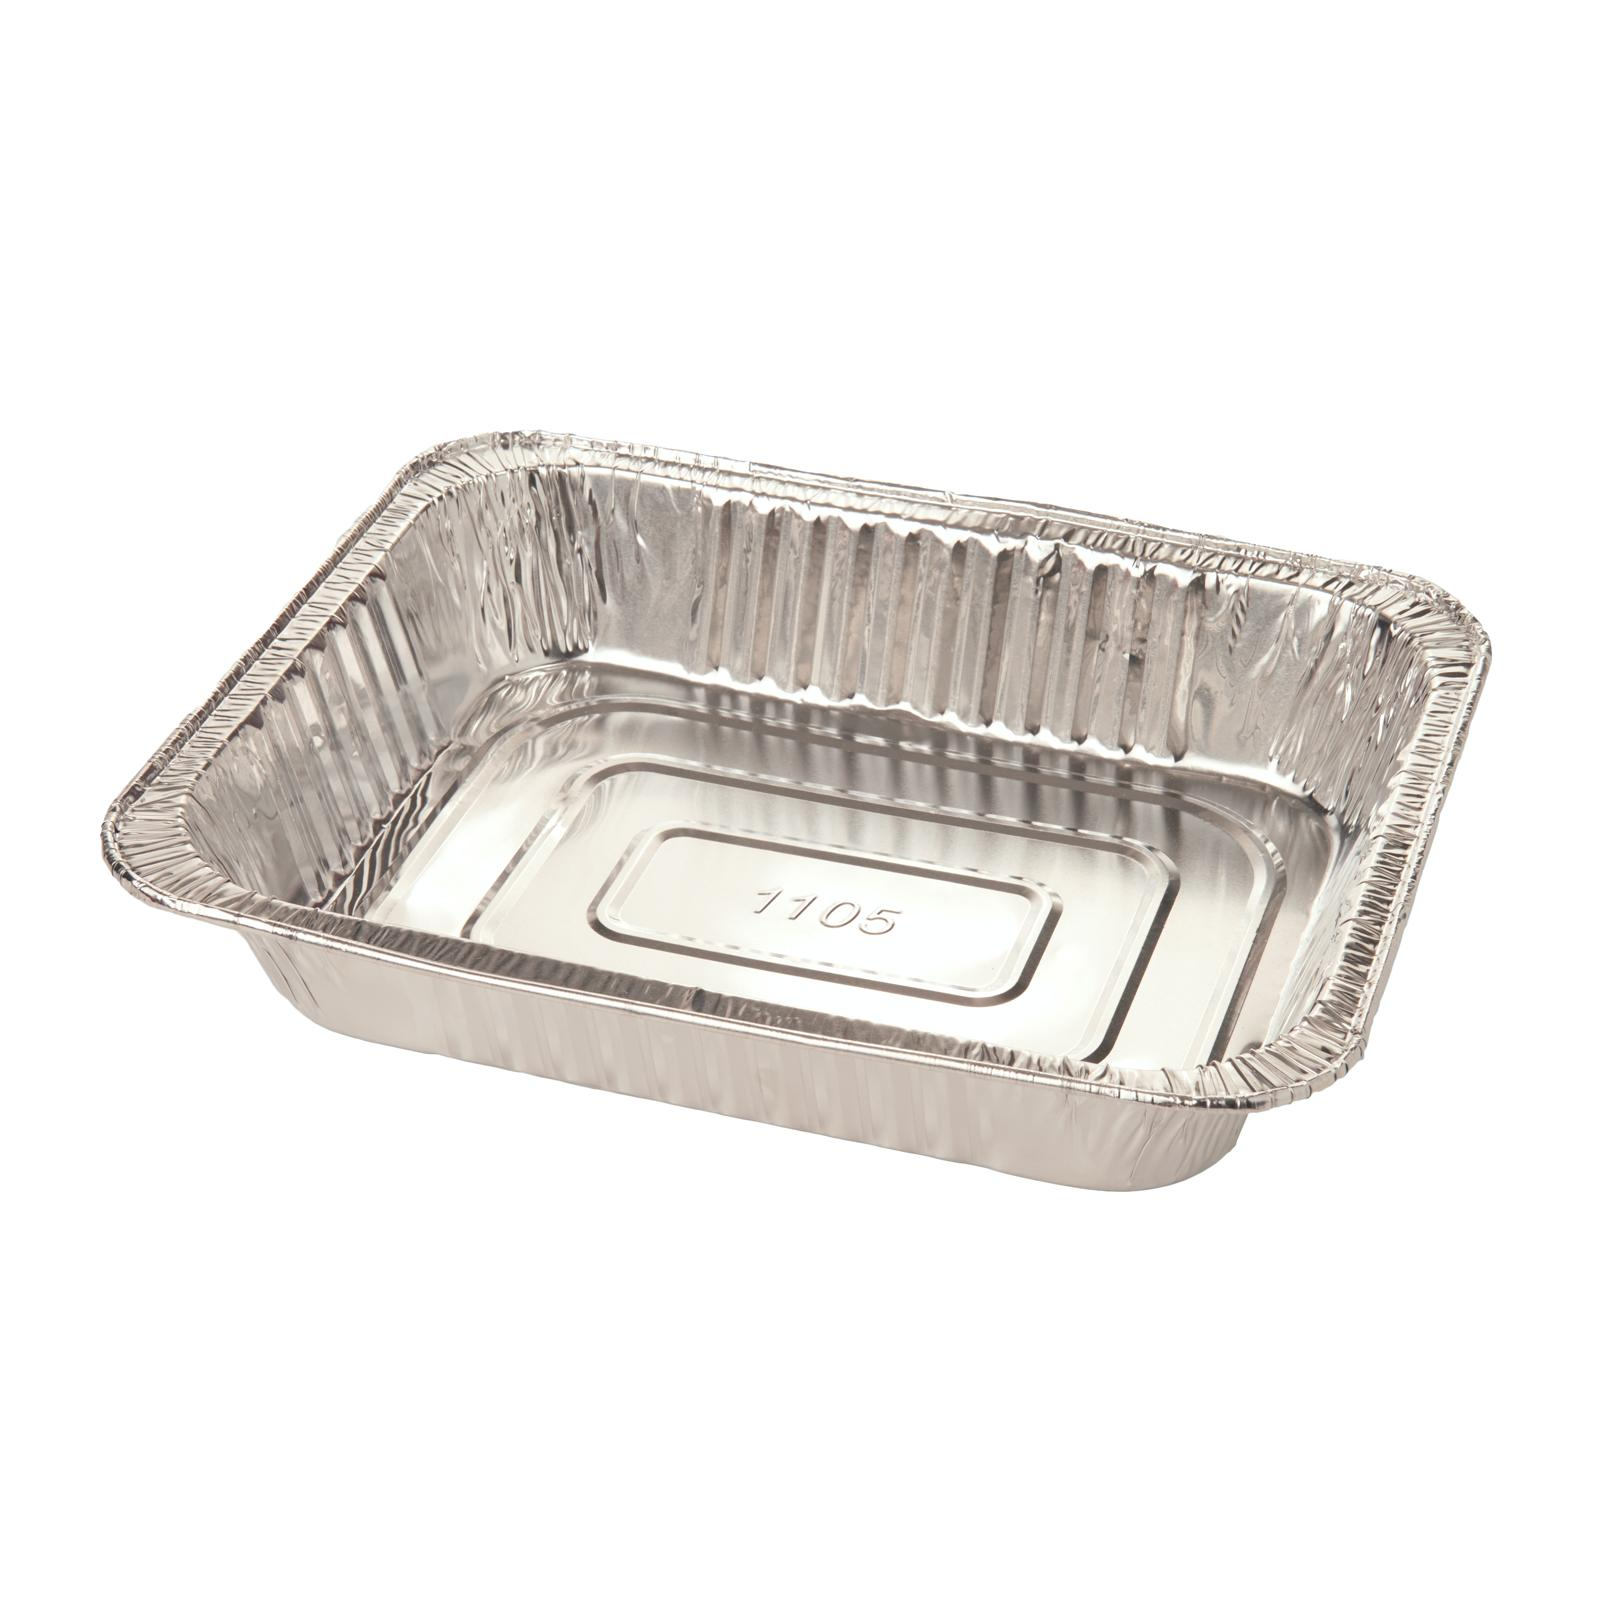 Mr Bel Disposable Small Aluminium Foil Tray